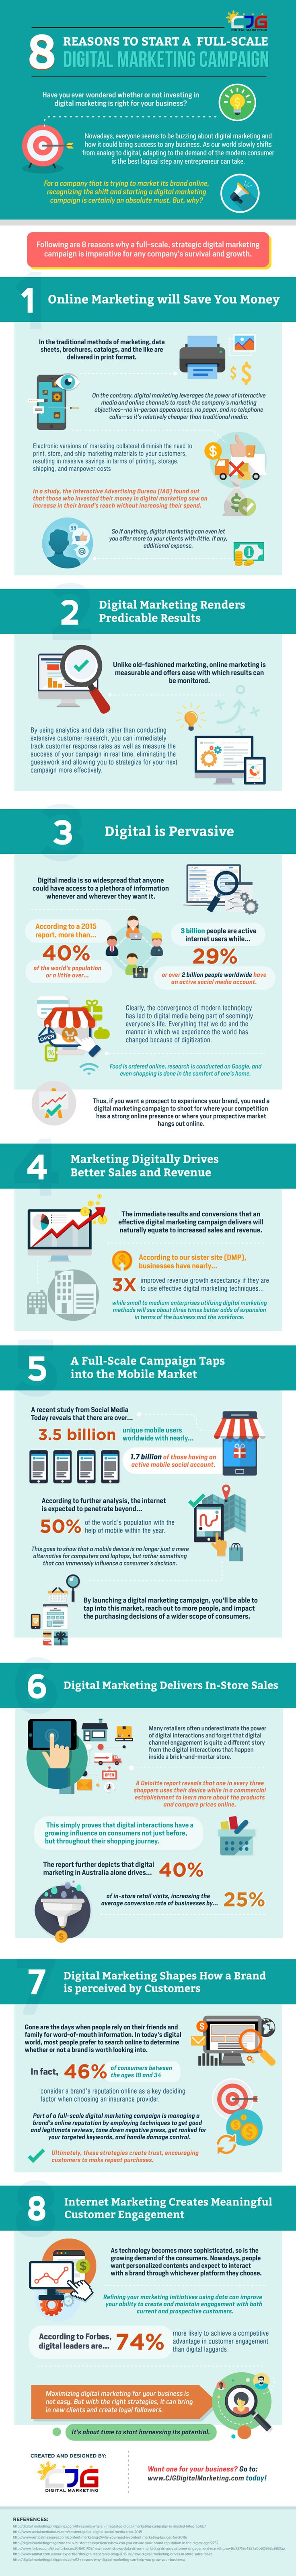 8-Reasons-to-Start-a-Full-Scale-Digital-Marketing-Campaign